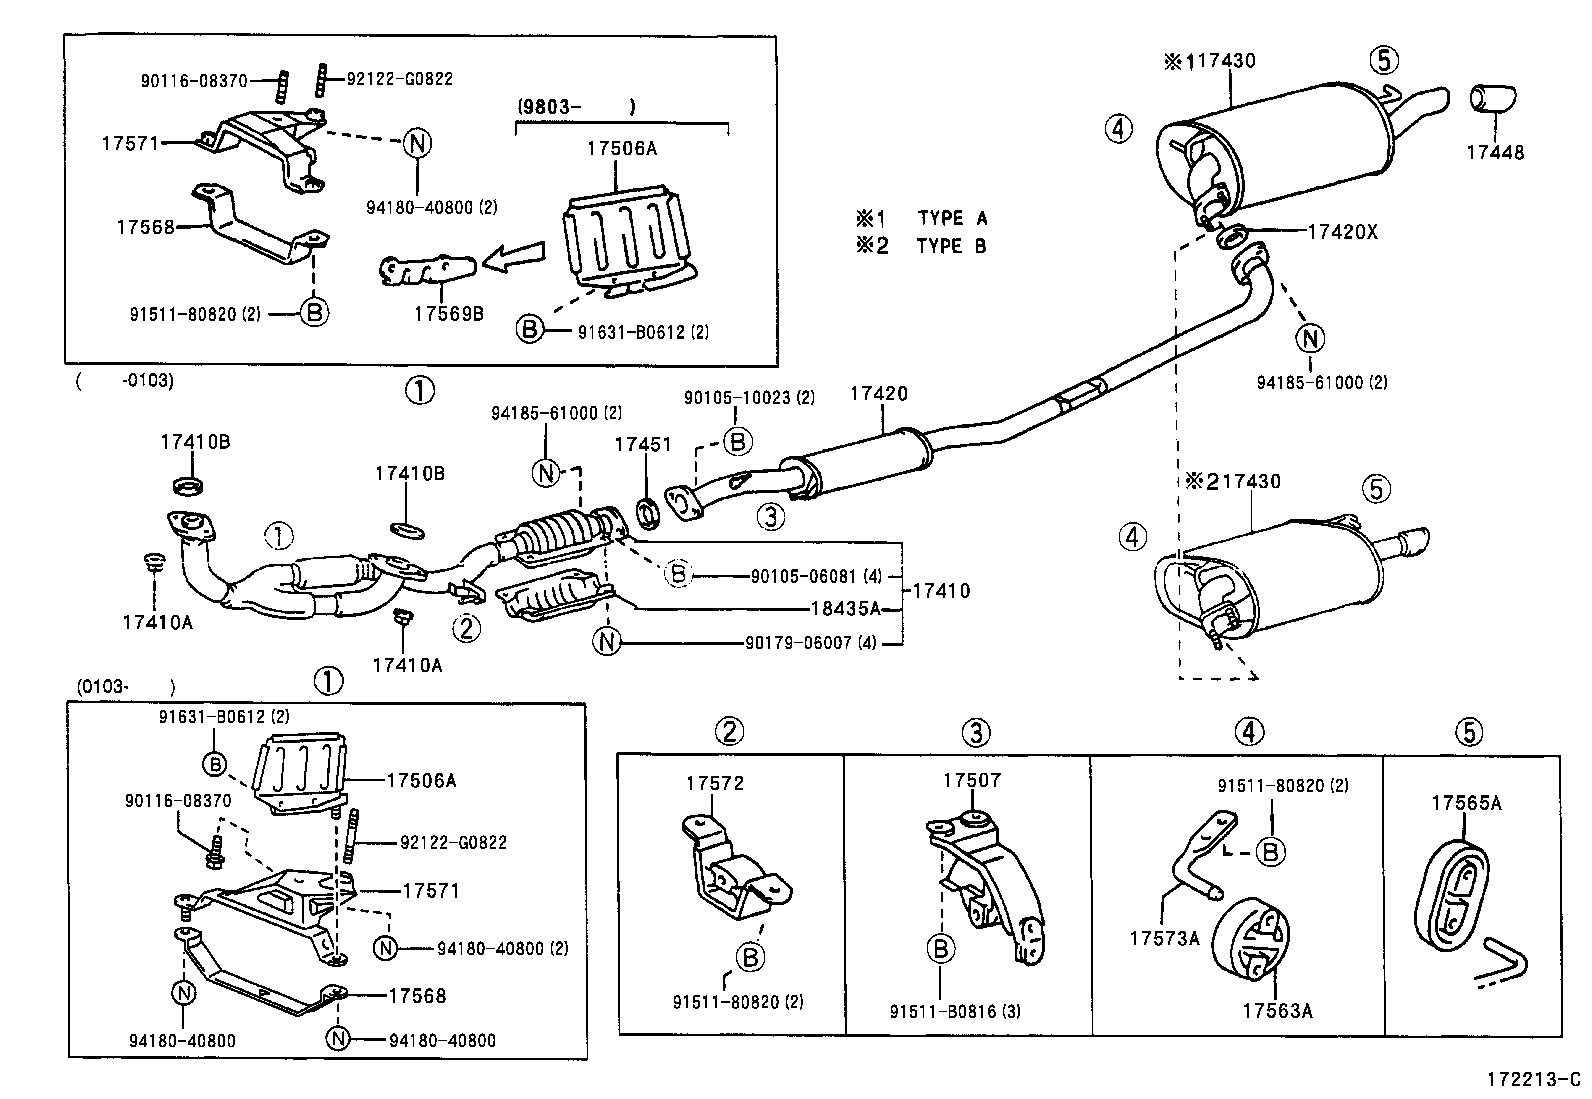 1997 Mercedes E420 Fuse Box Diagram. Mercedes. Auto Fuse